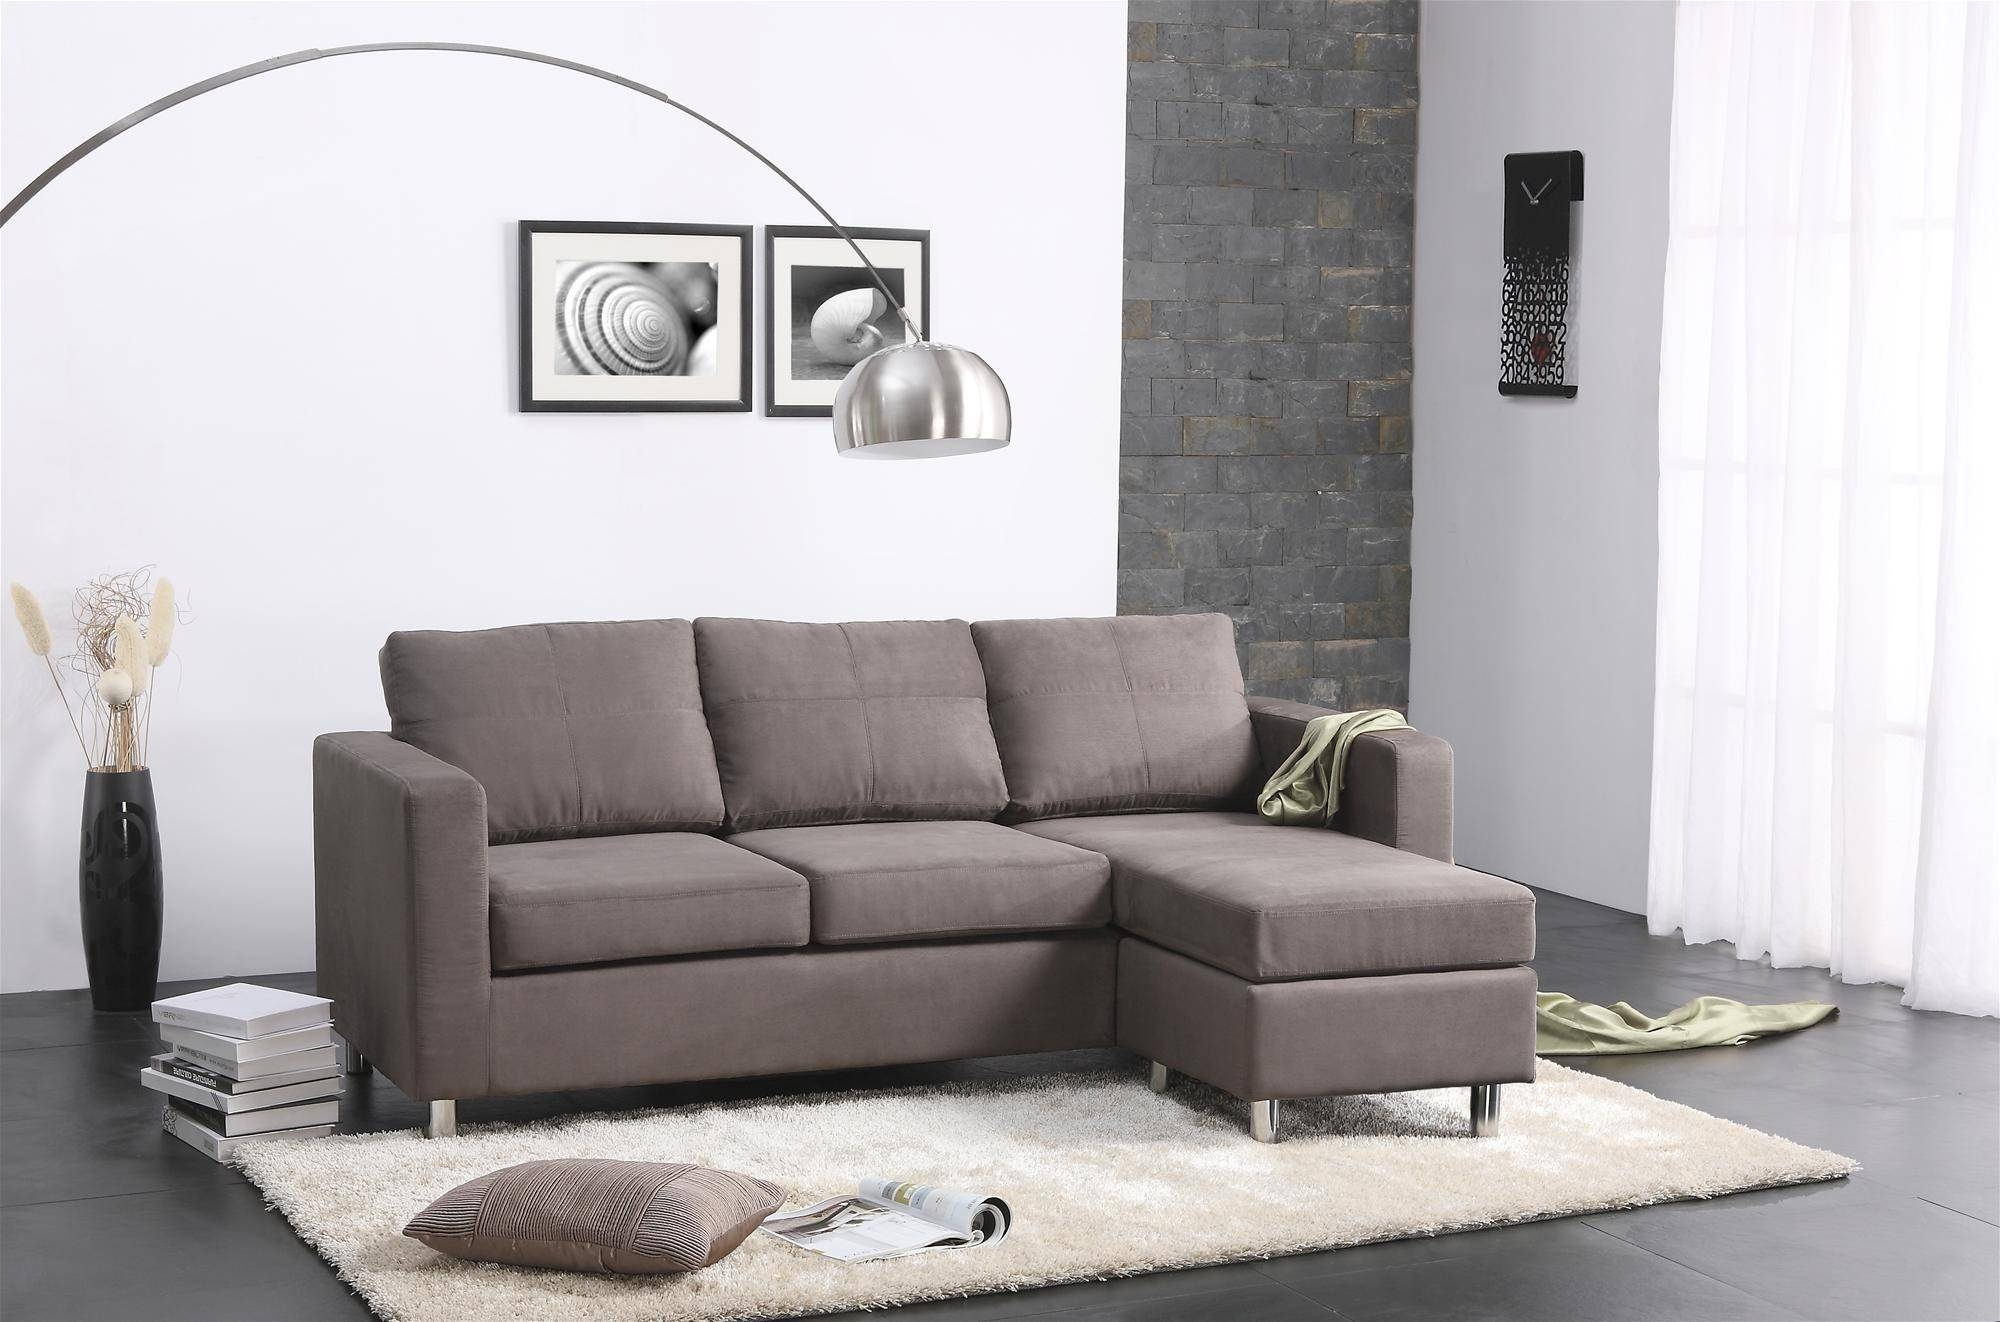 Furniture: Discount Sofas | Hideaway Bed Couch | Discount regarding Inexpensive Sectional Sofas For Small Spaces (Image 11 of 30)